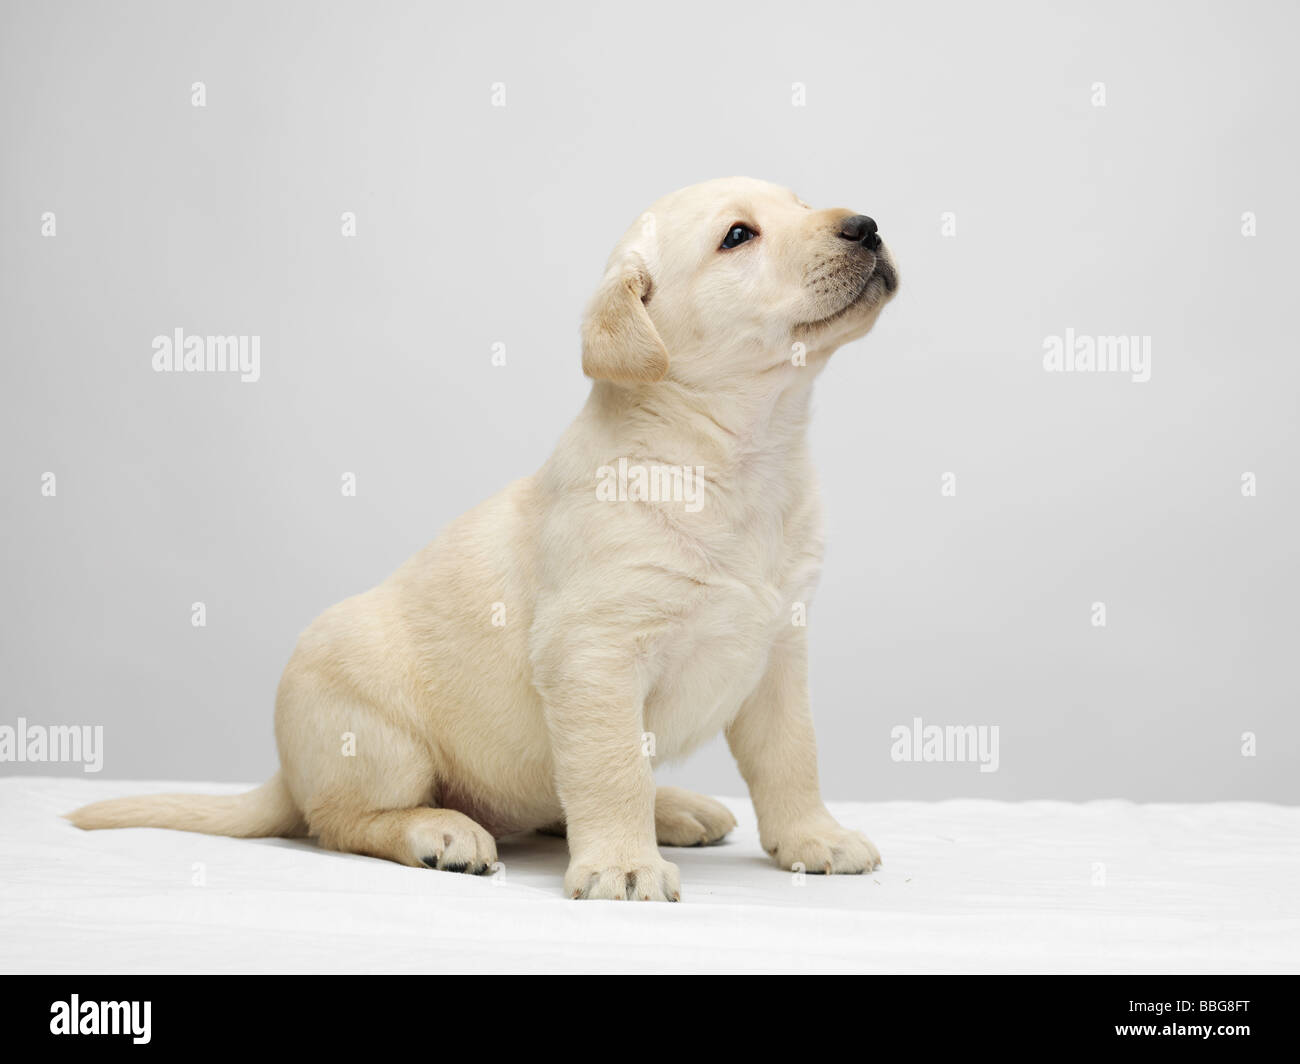 Simple Grey Chubby Adorable Dog - single-labrador-puppy-sitting-and-looking-up-on-a-white-table-against-BBG8FT  Graphic_765239  .jpg